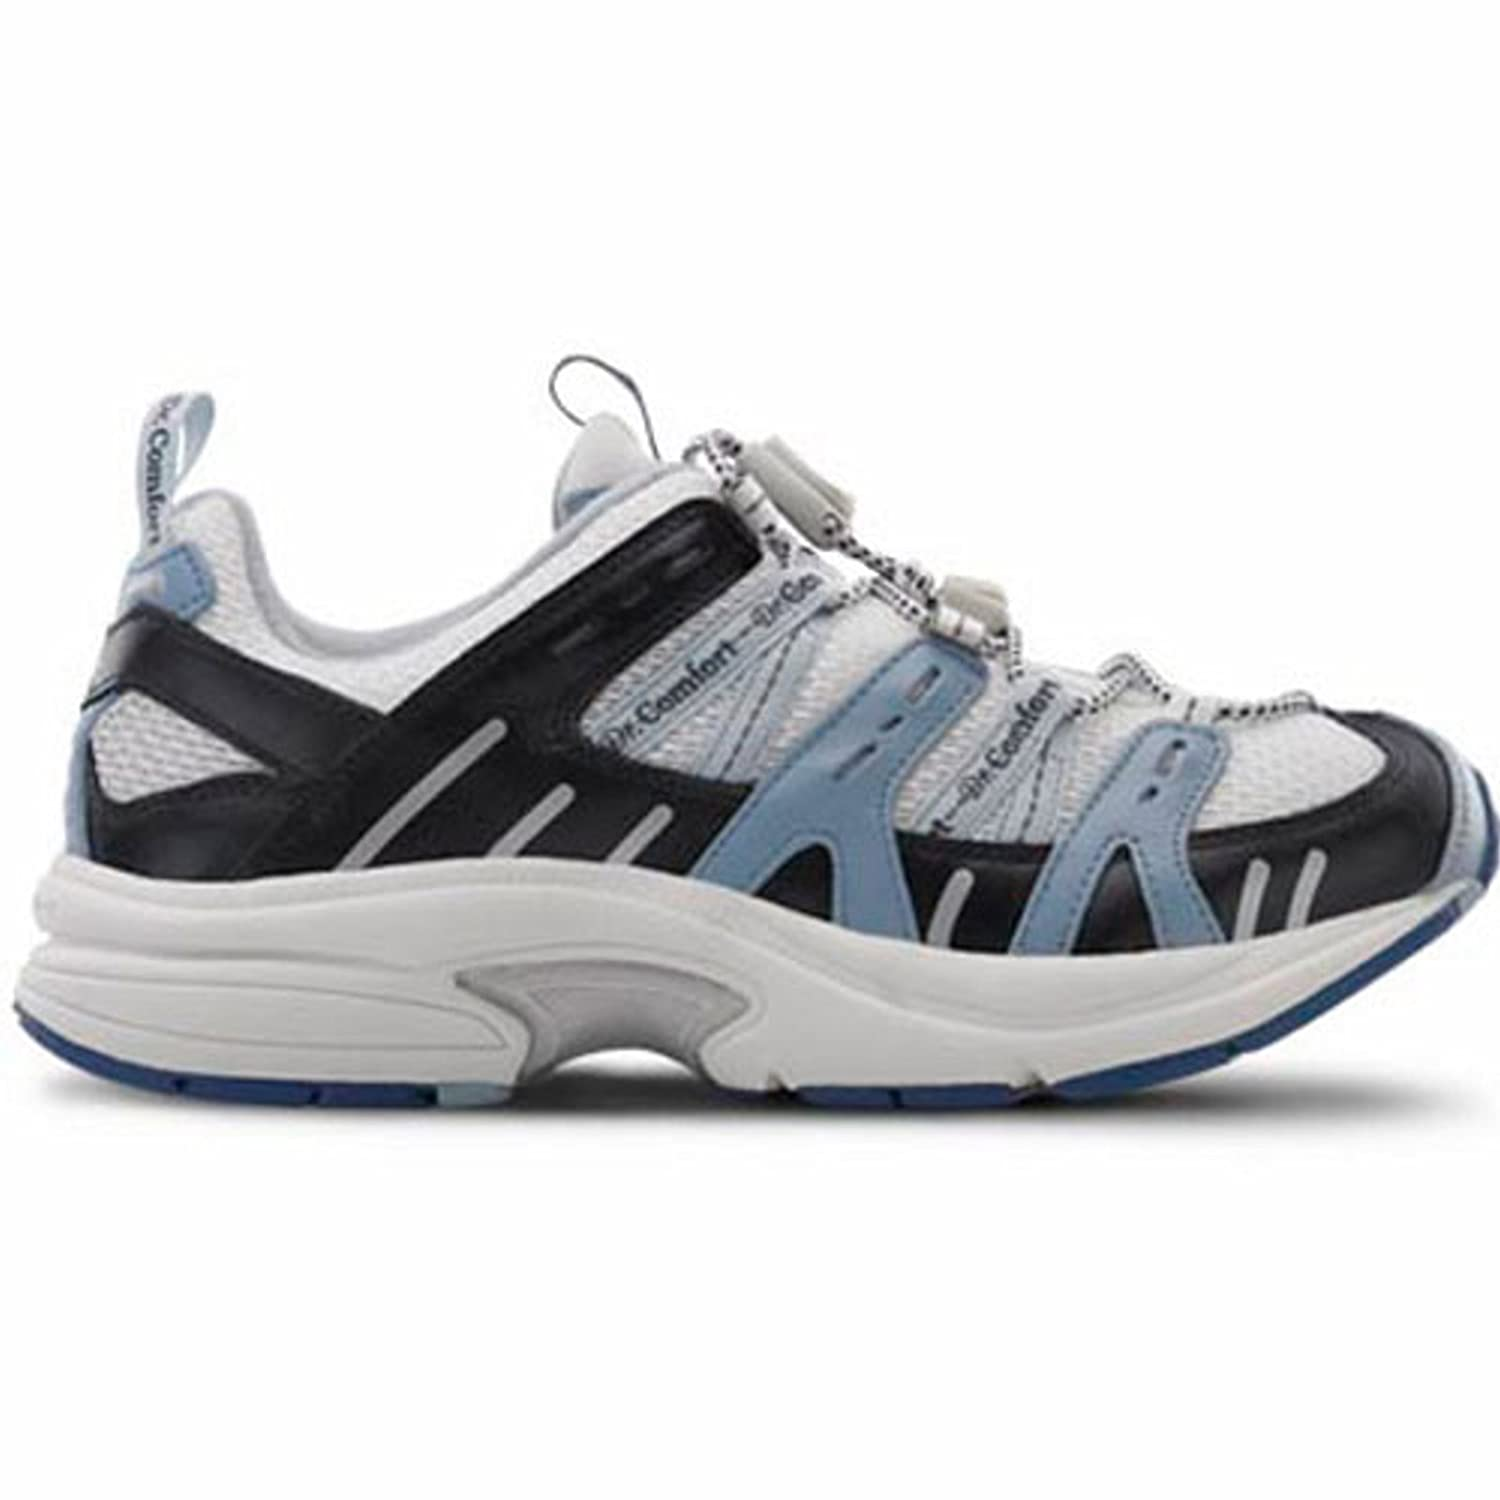 Dr. Comfort Women's Refresh 9.5 Diabetic Athletic Shoes B00IO86GZS 9.5 Refresh M US|Berry 8b440e